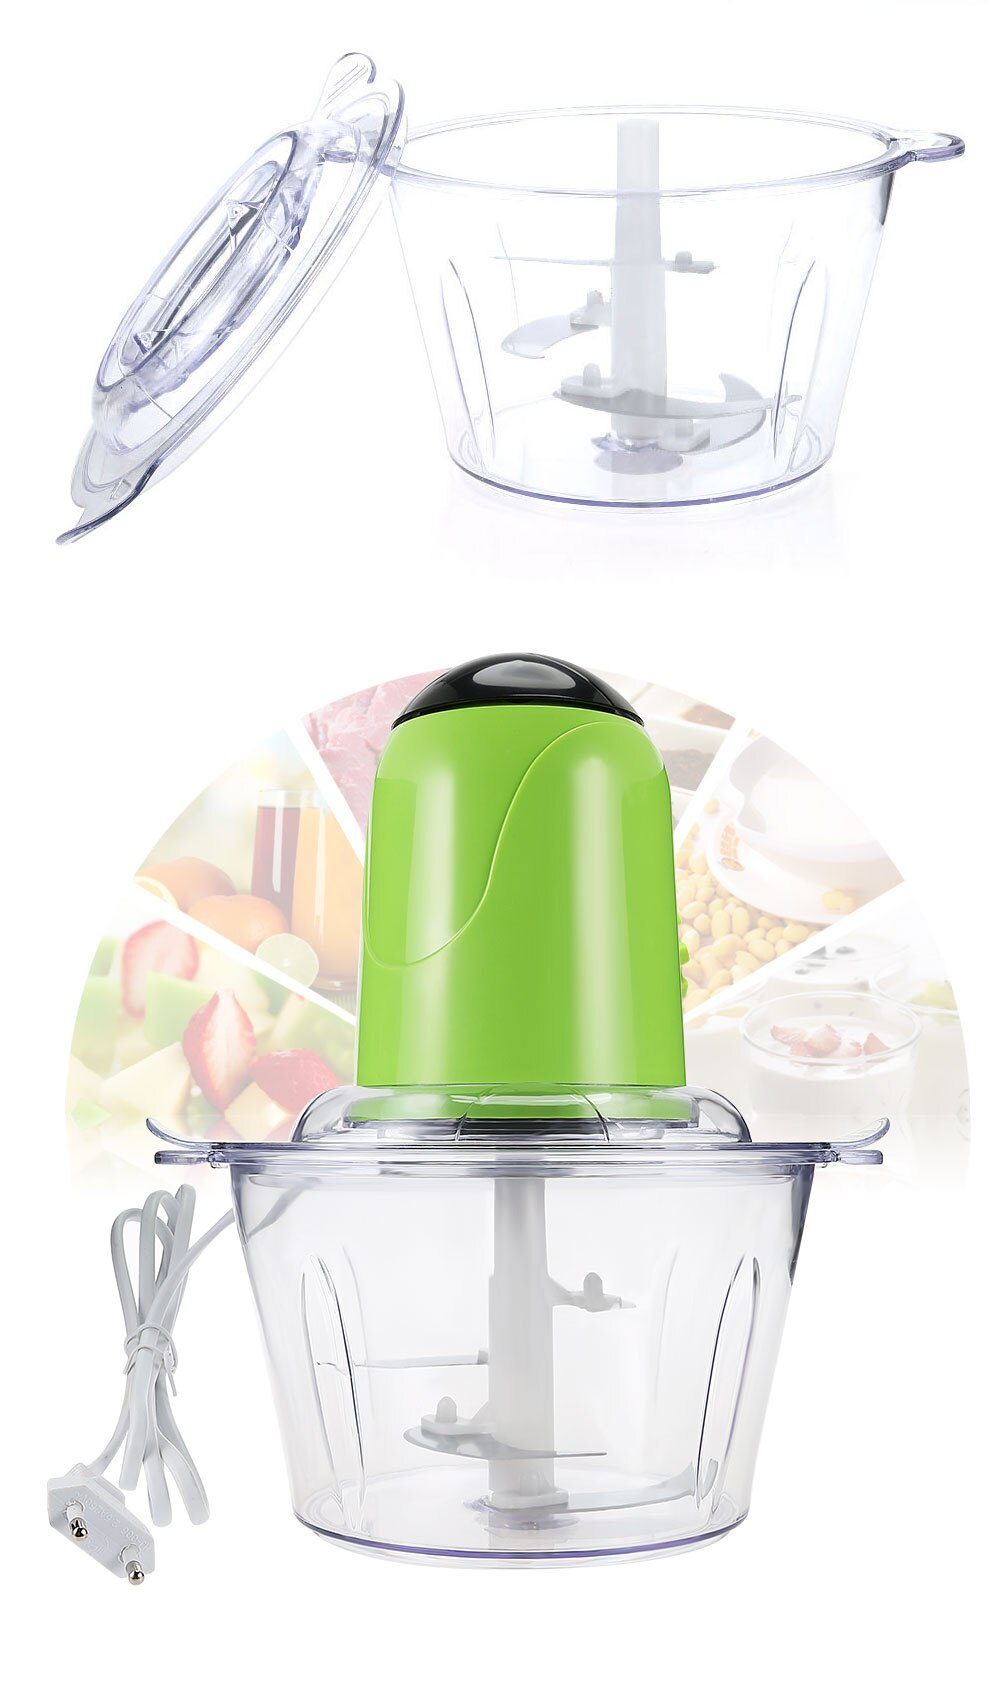 Image result for electric food chopper